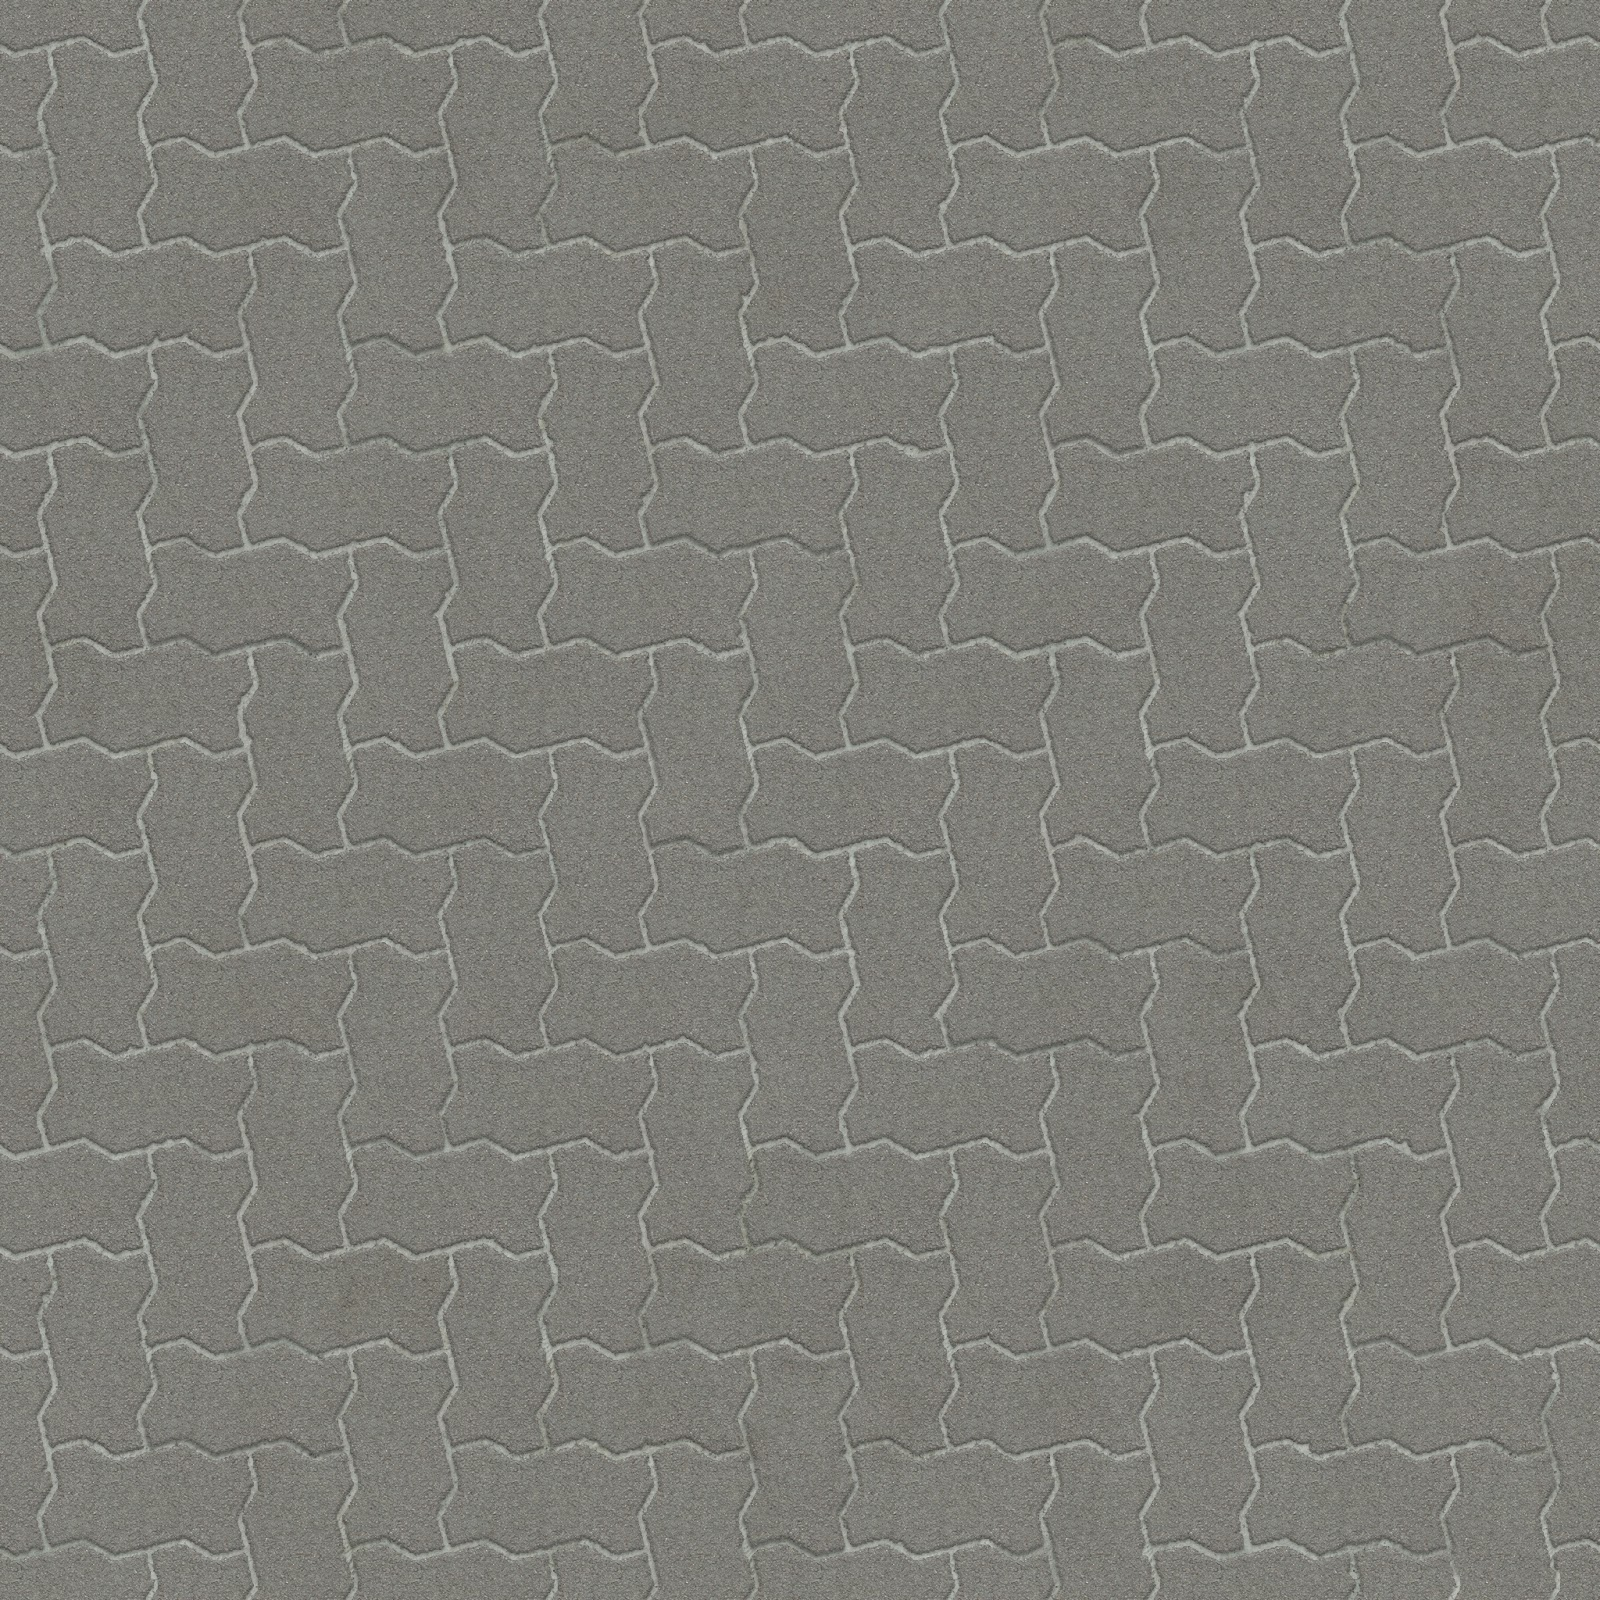 Brick pavement clean grey seamless texture 2048x2048